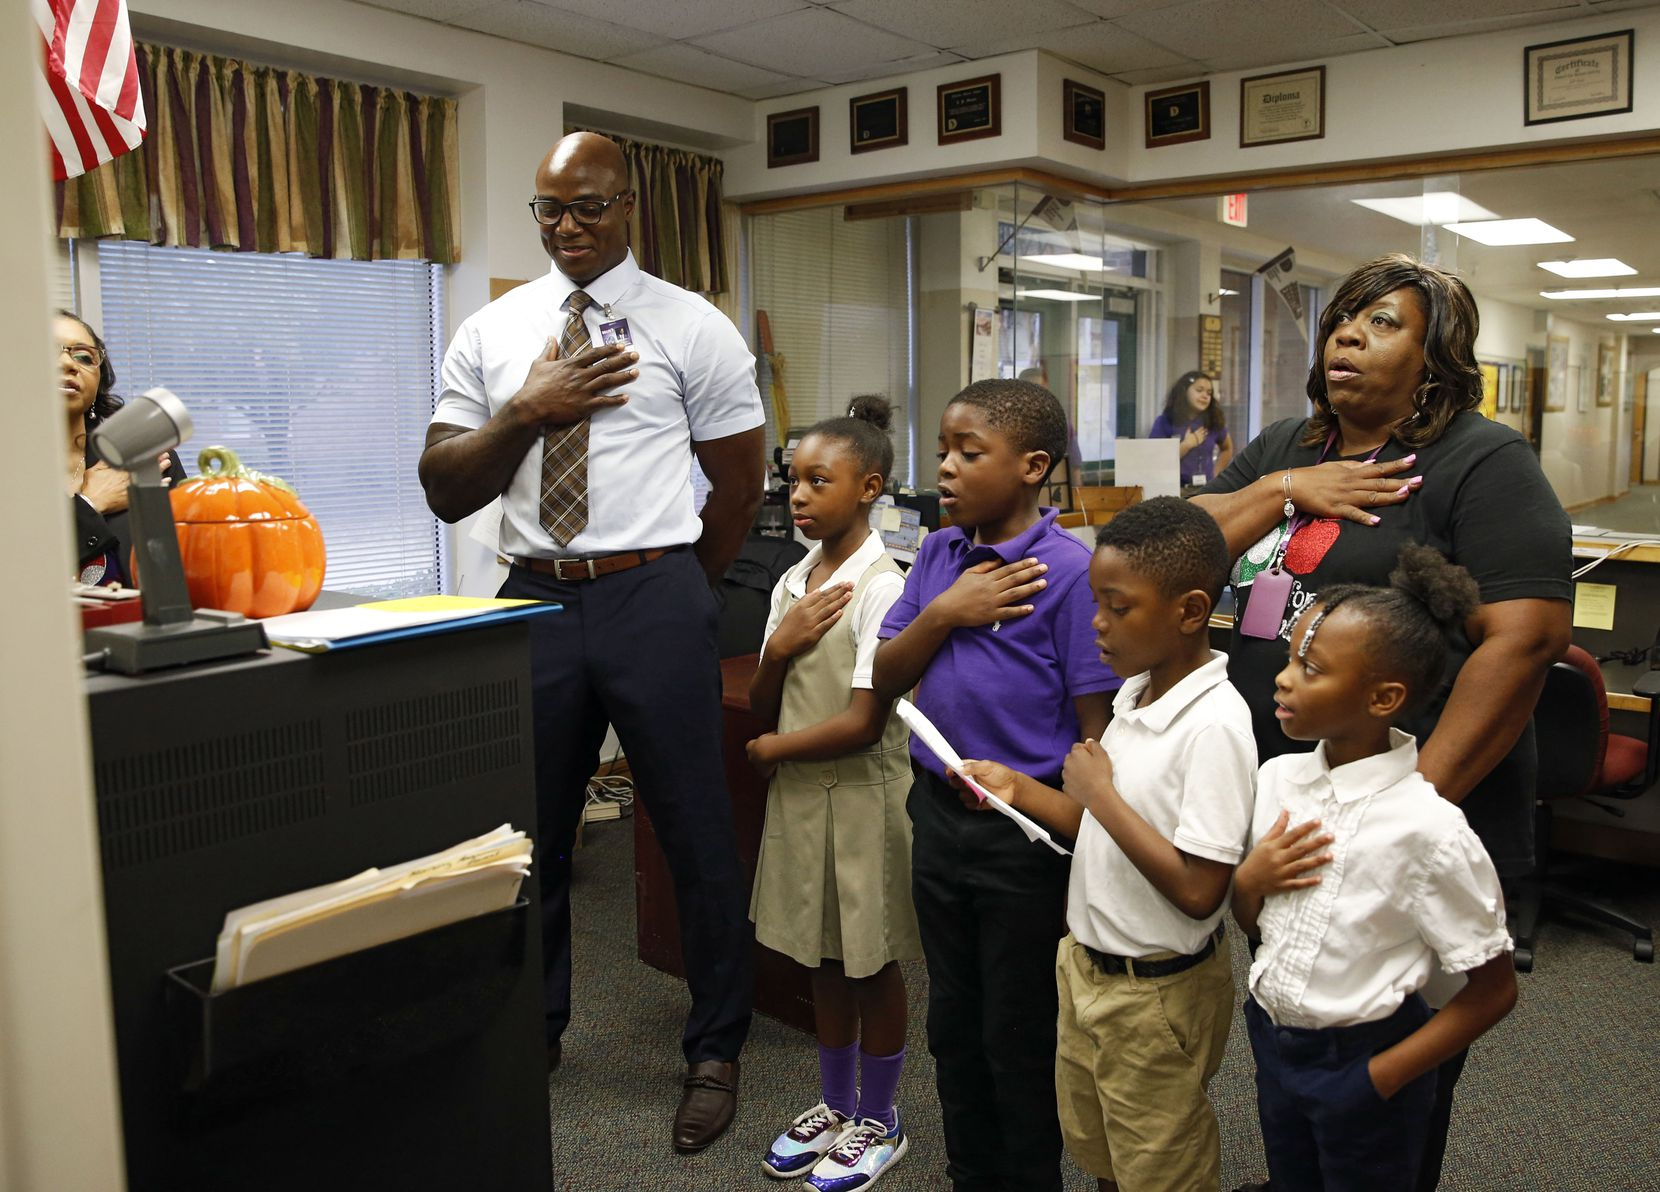 Ware recites the Pledge of Allegiance with Howard (left), Starks students Markayla Green, D'Coreyian Wilson, Sim'meon Williams and Ivyunna Oatman, and fourth-grade science teacher Stephanie Simon during morning announcements.